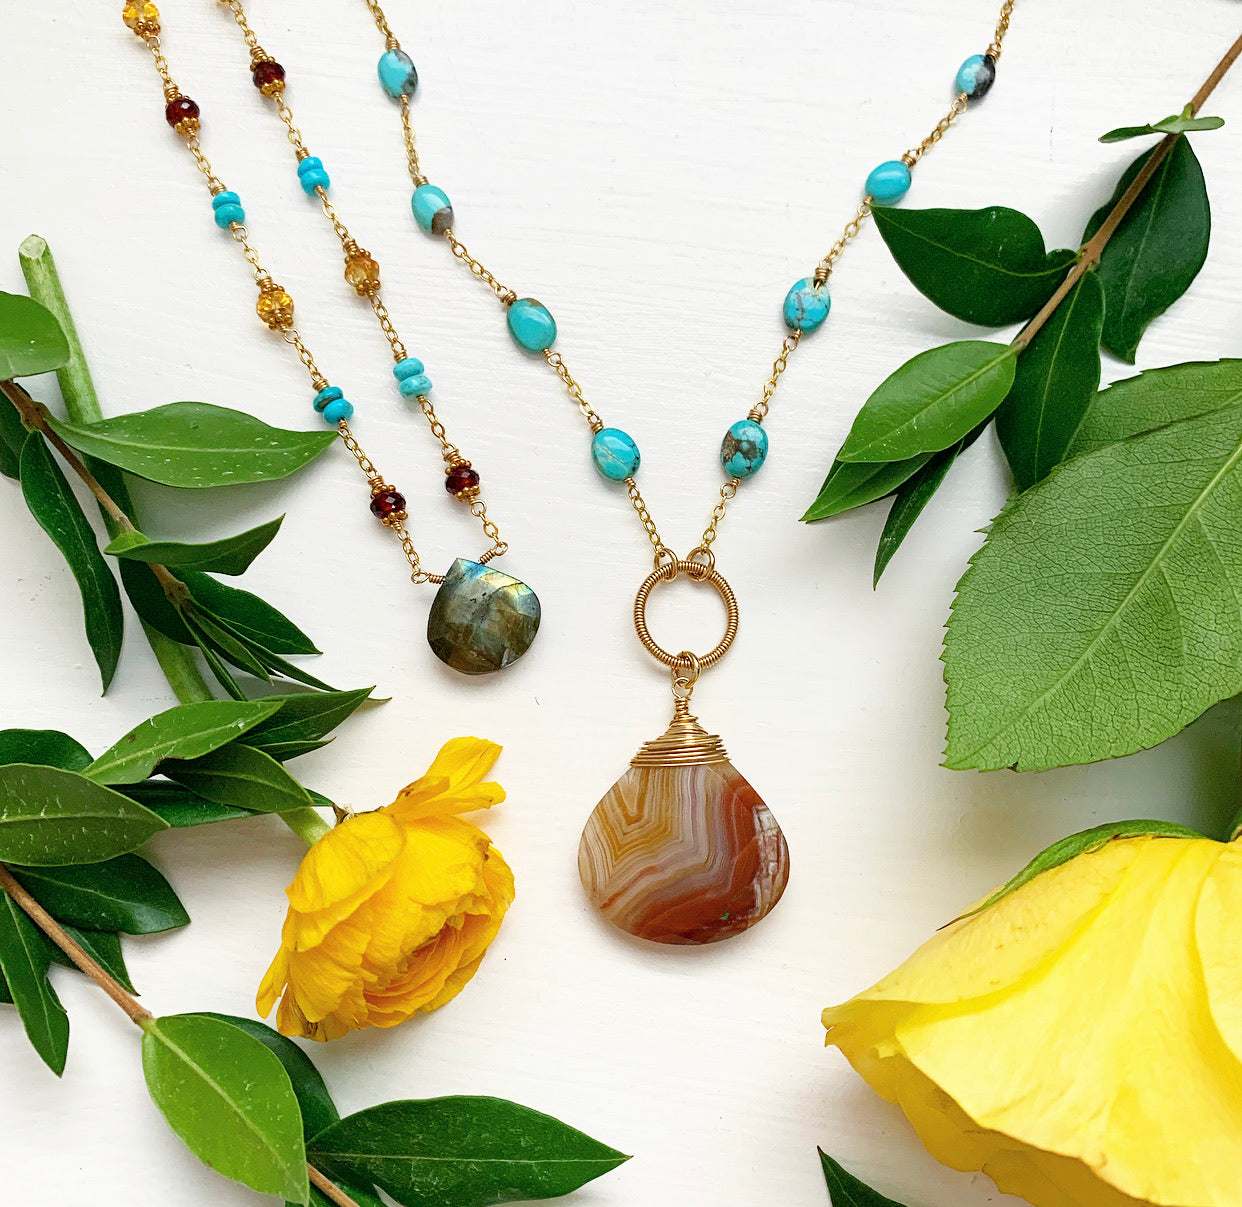 963-One of a Kind Gemstone Drop Necklace